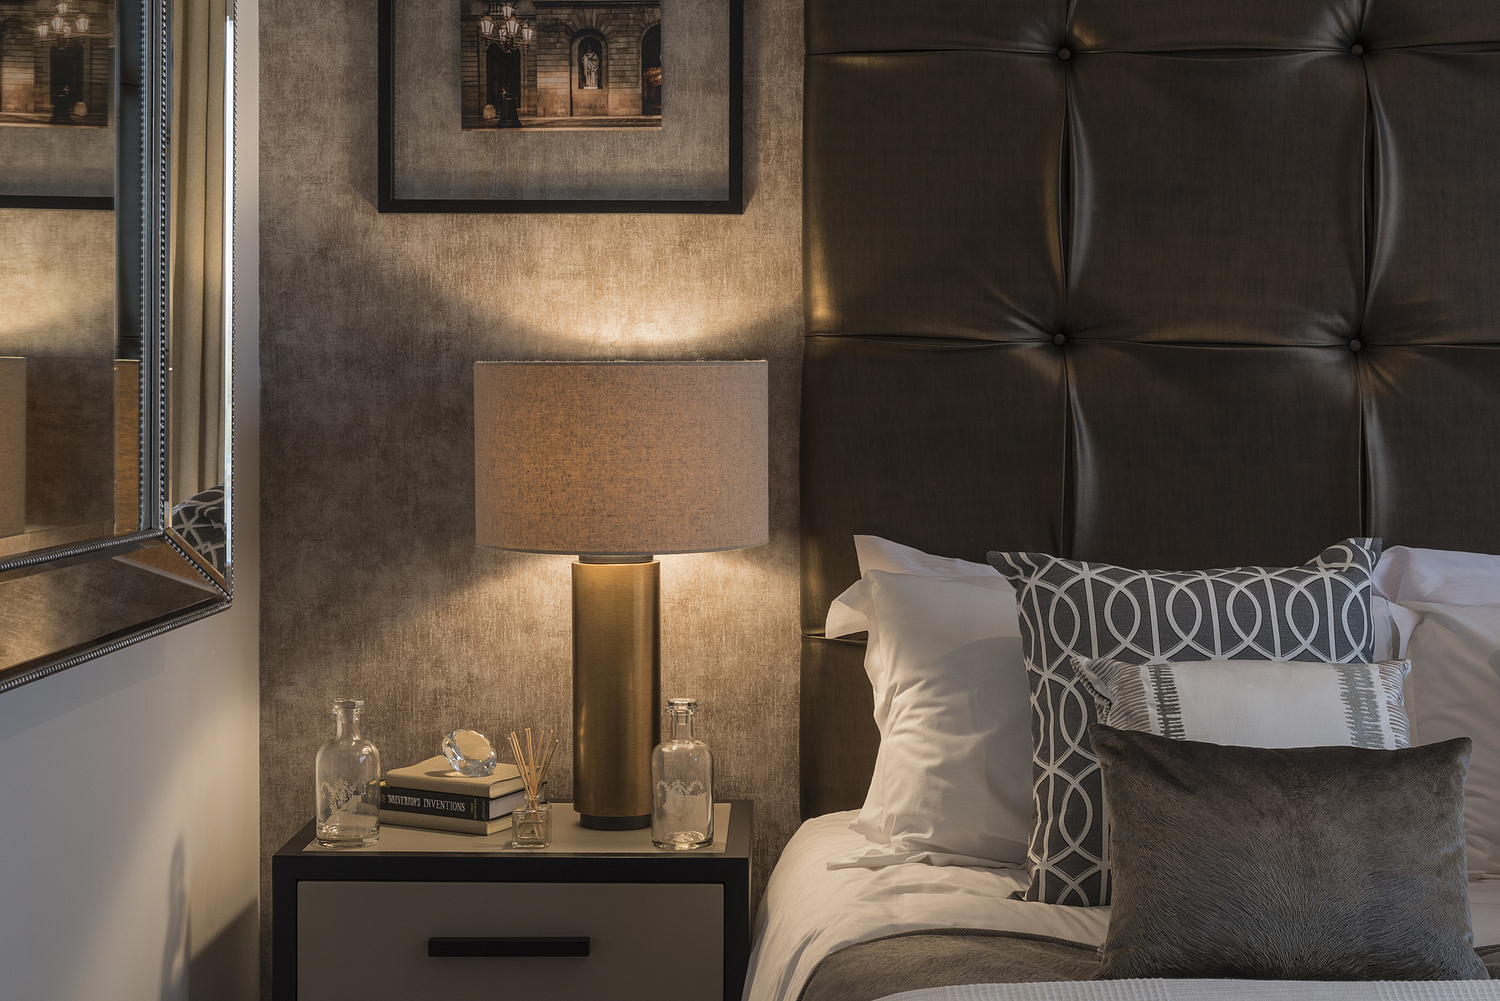 Bed and side table detail, London show apartment